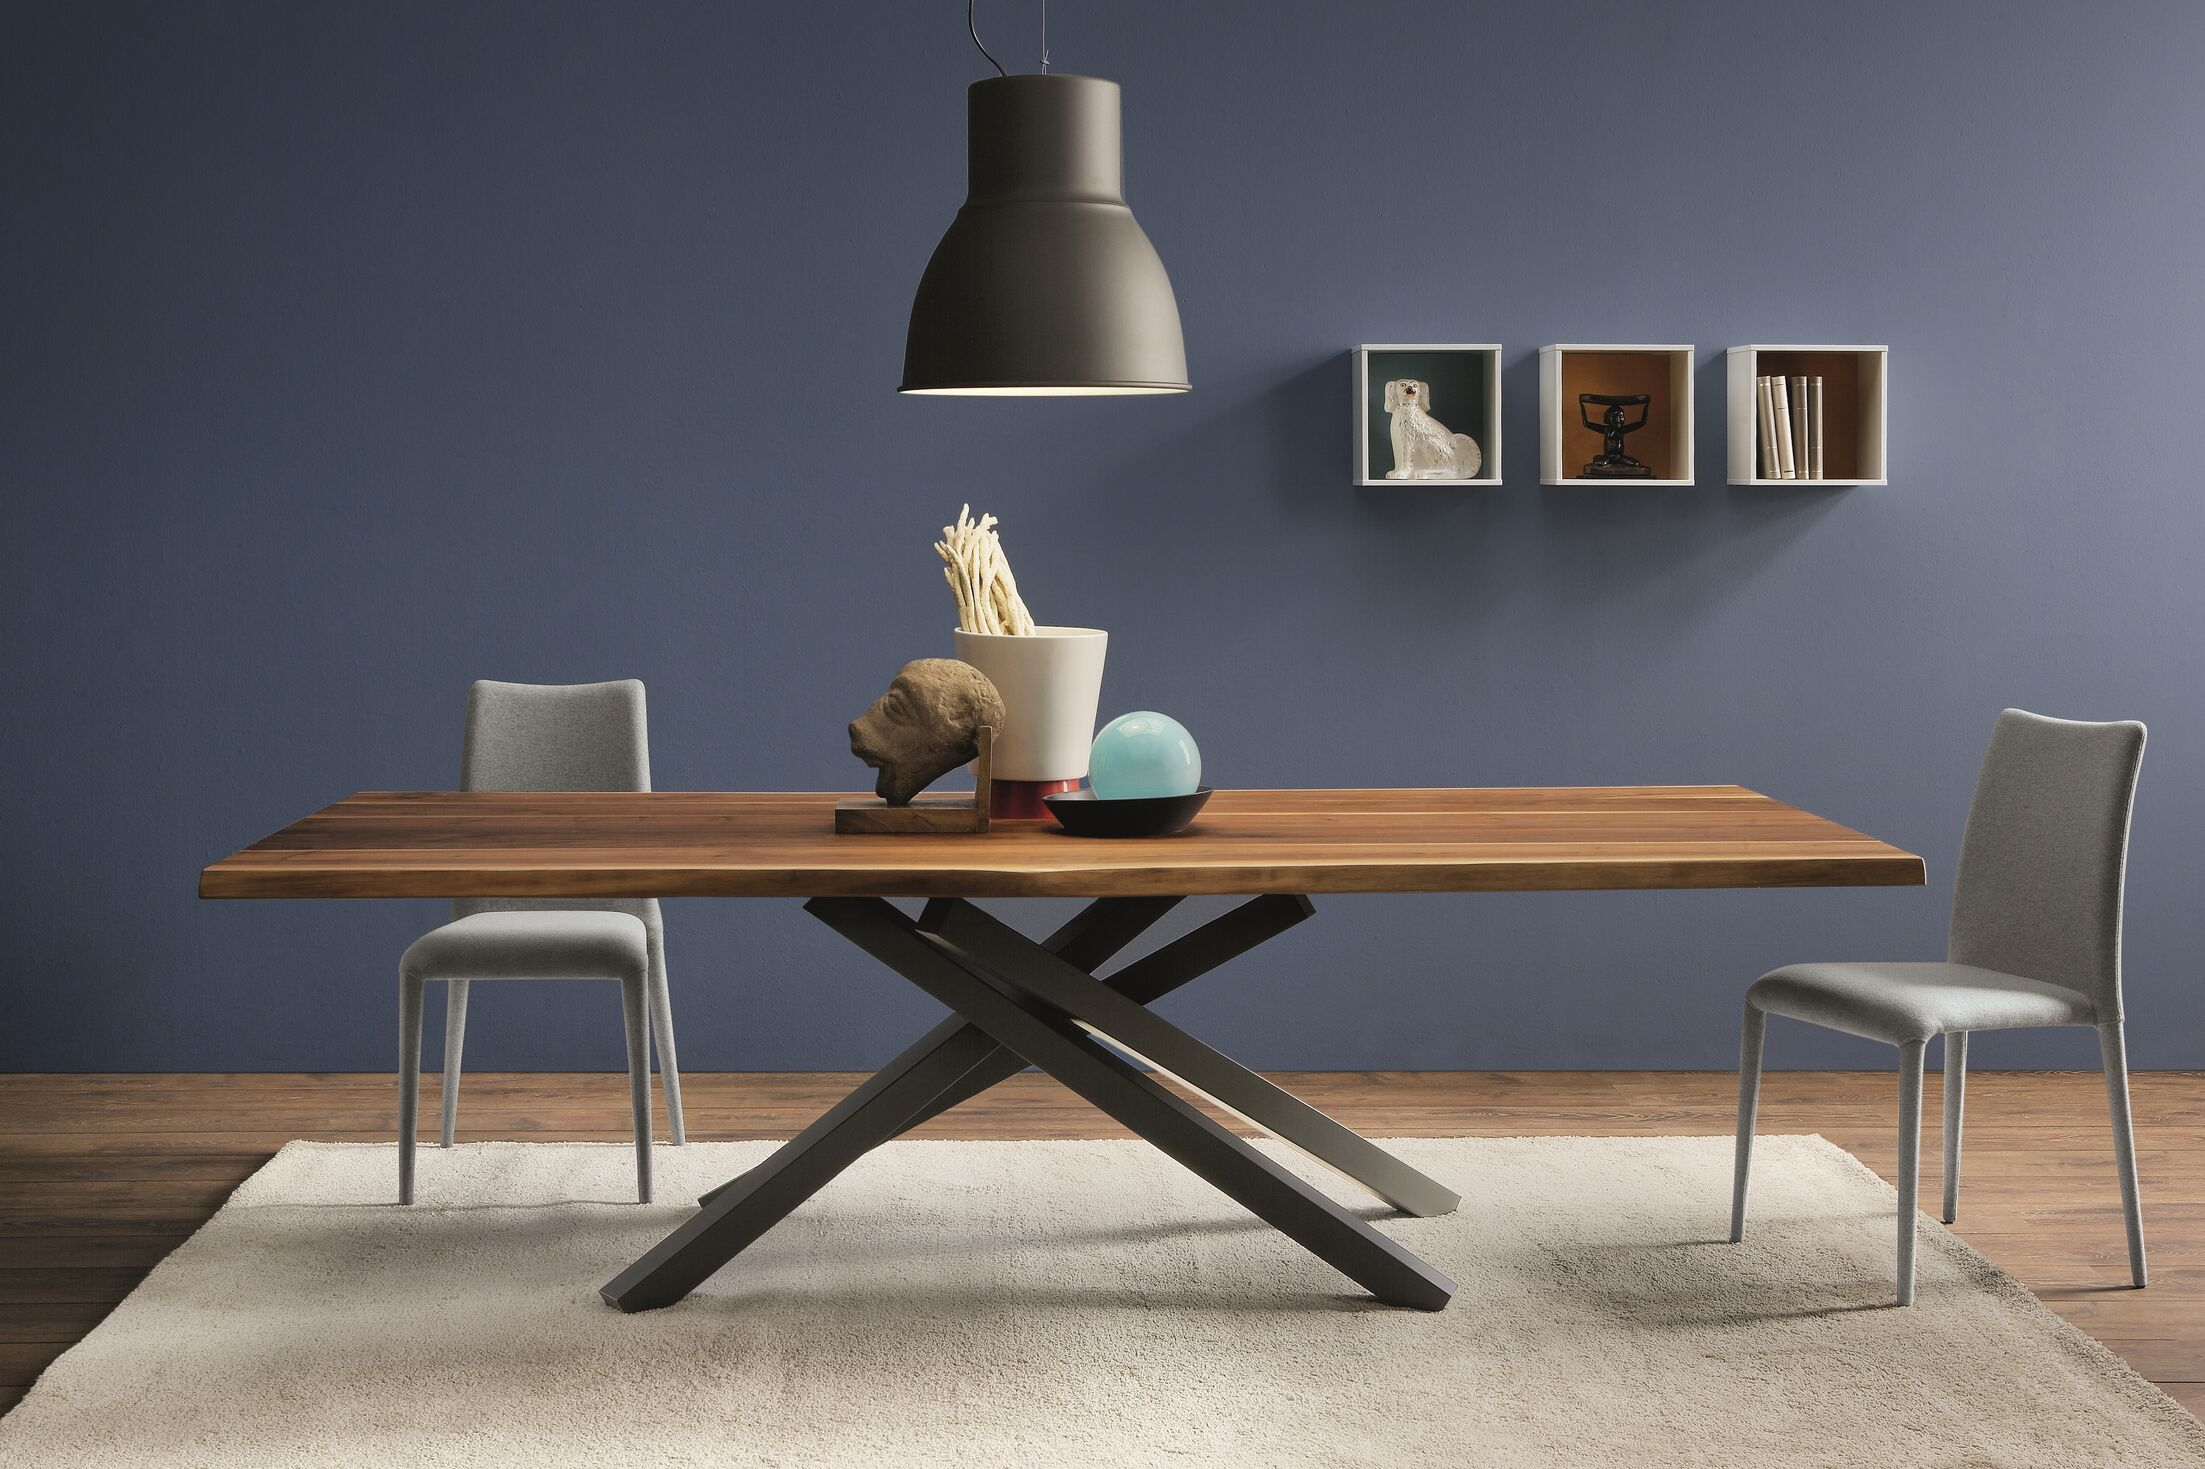 Pechino Dining Table Size: 29.5